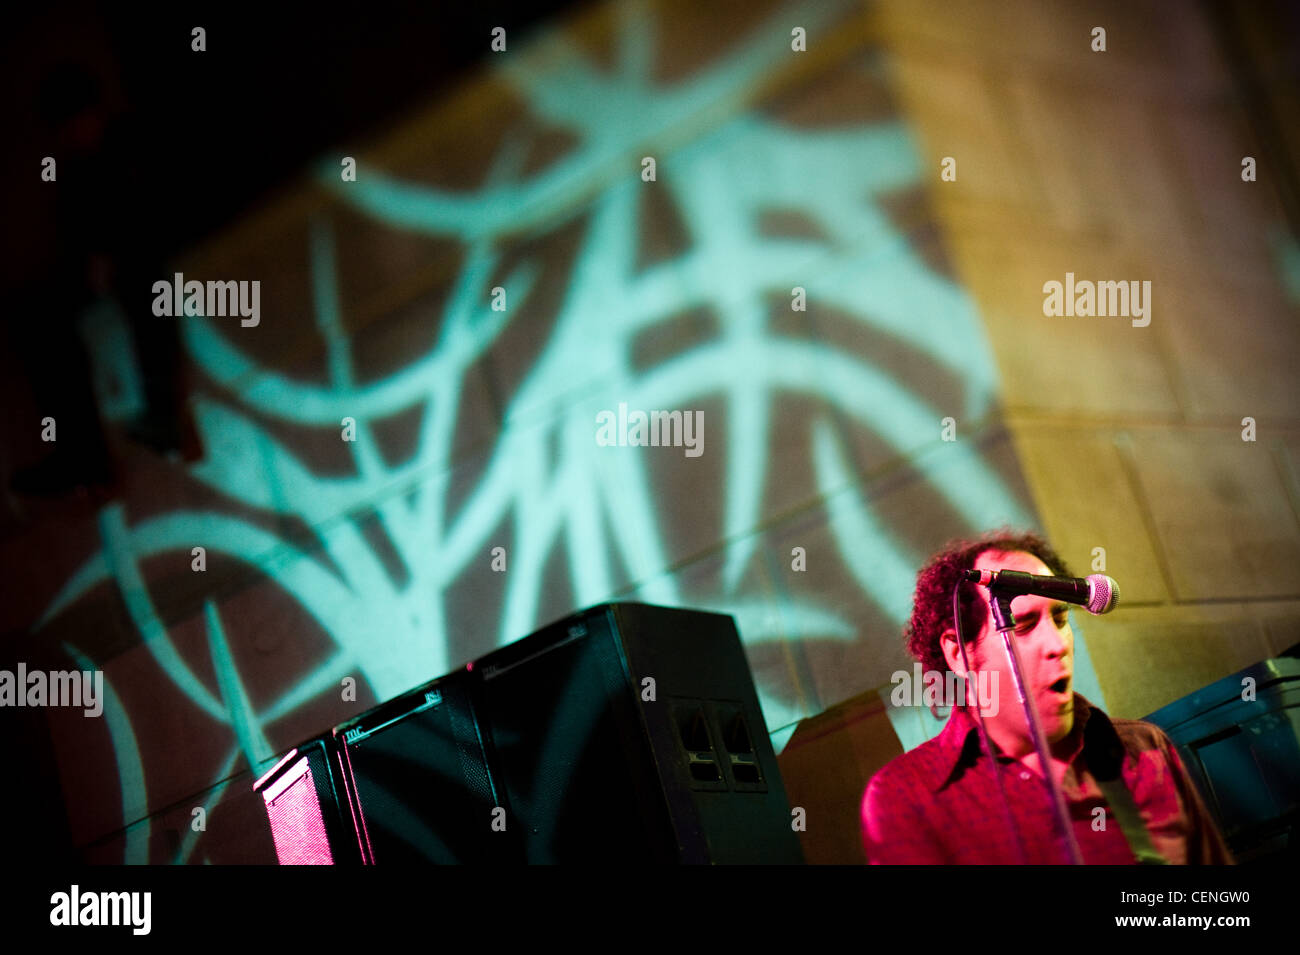 Psychedelic Rock Stock Photos & Psychedelic Rock Stock ...